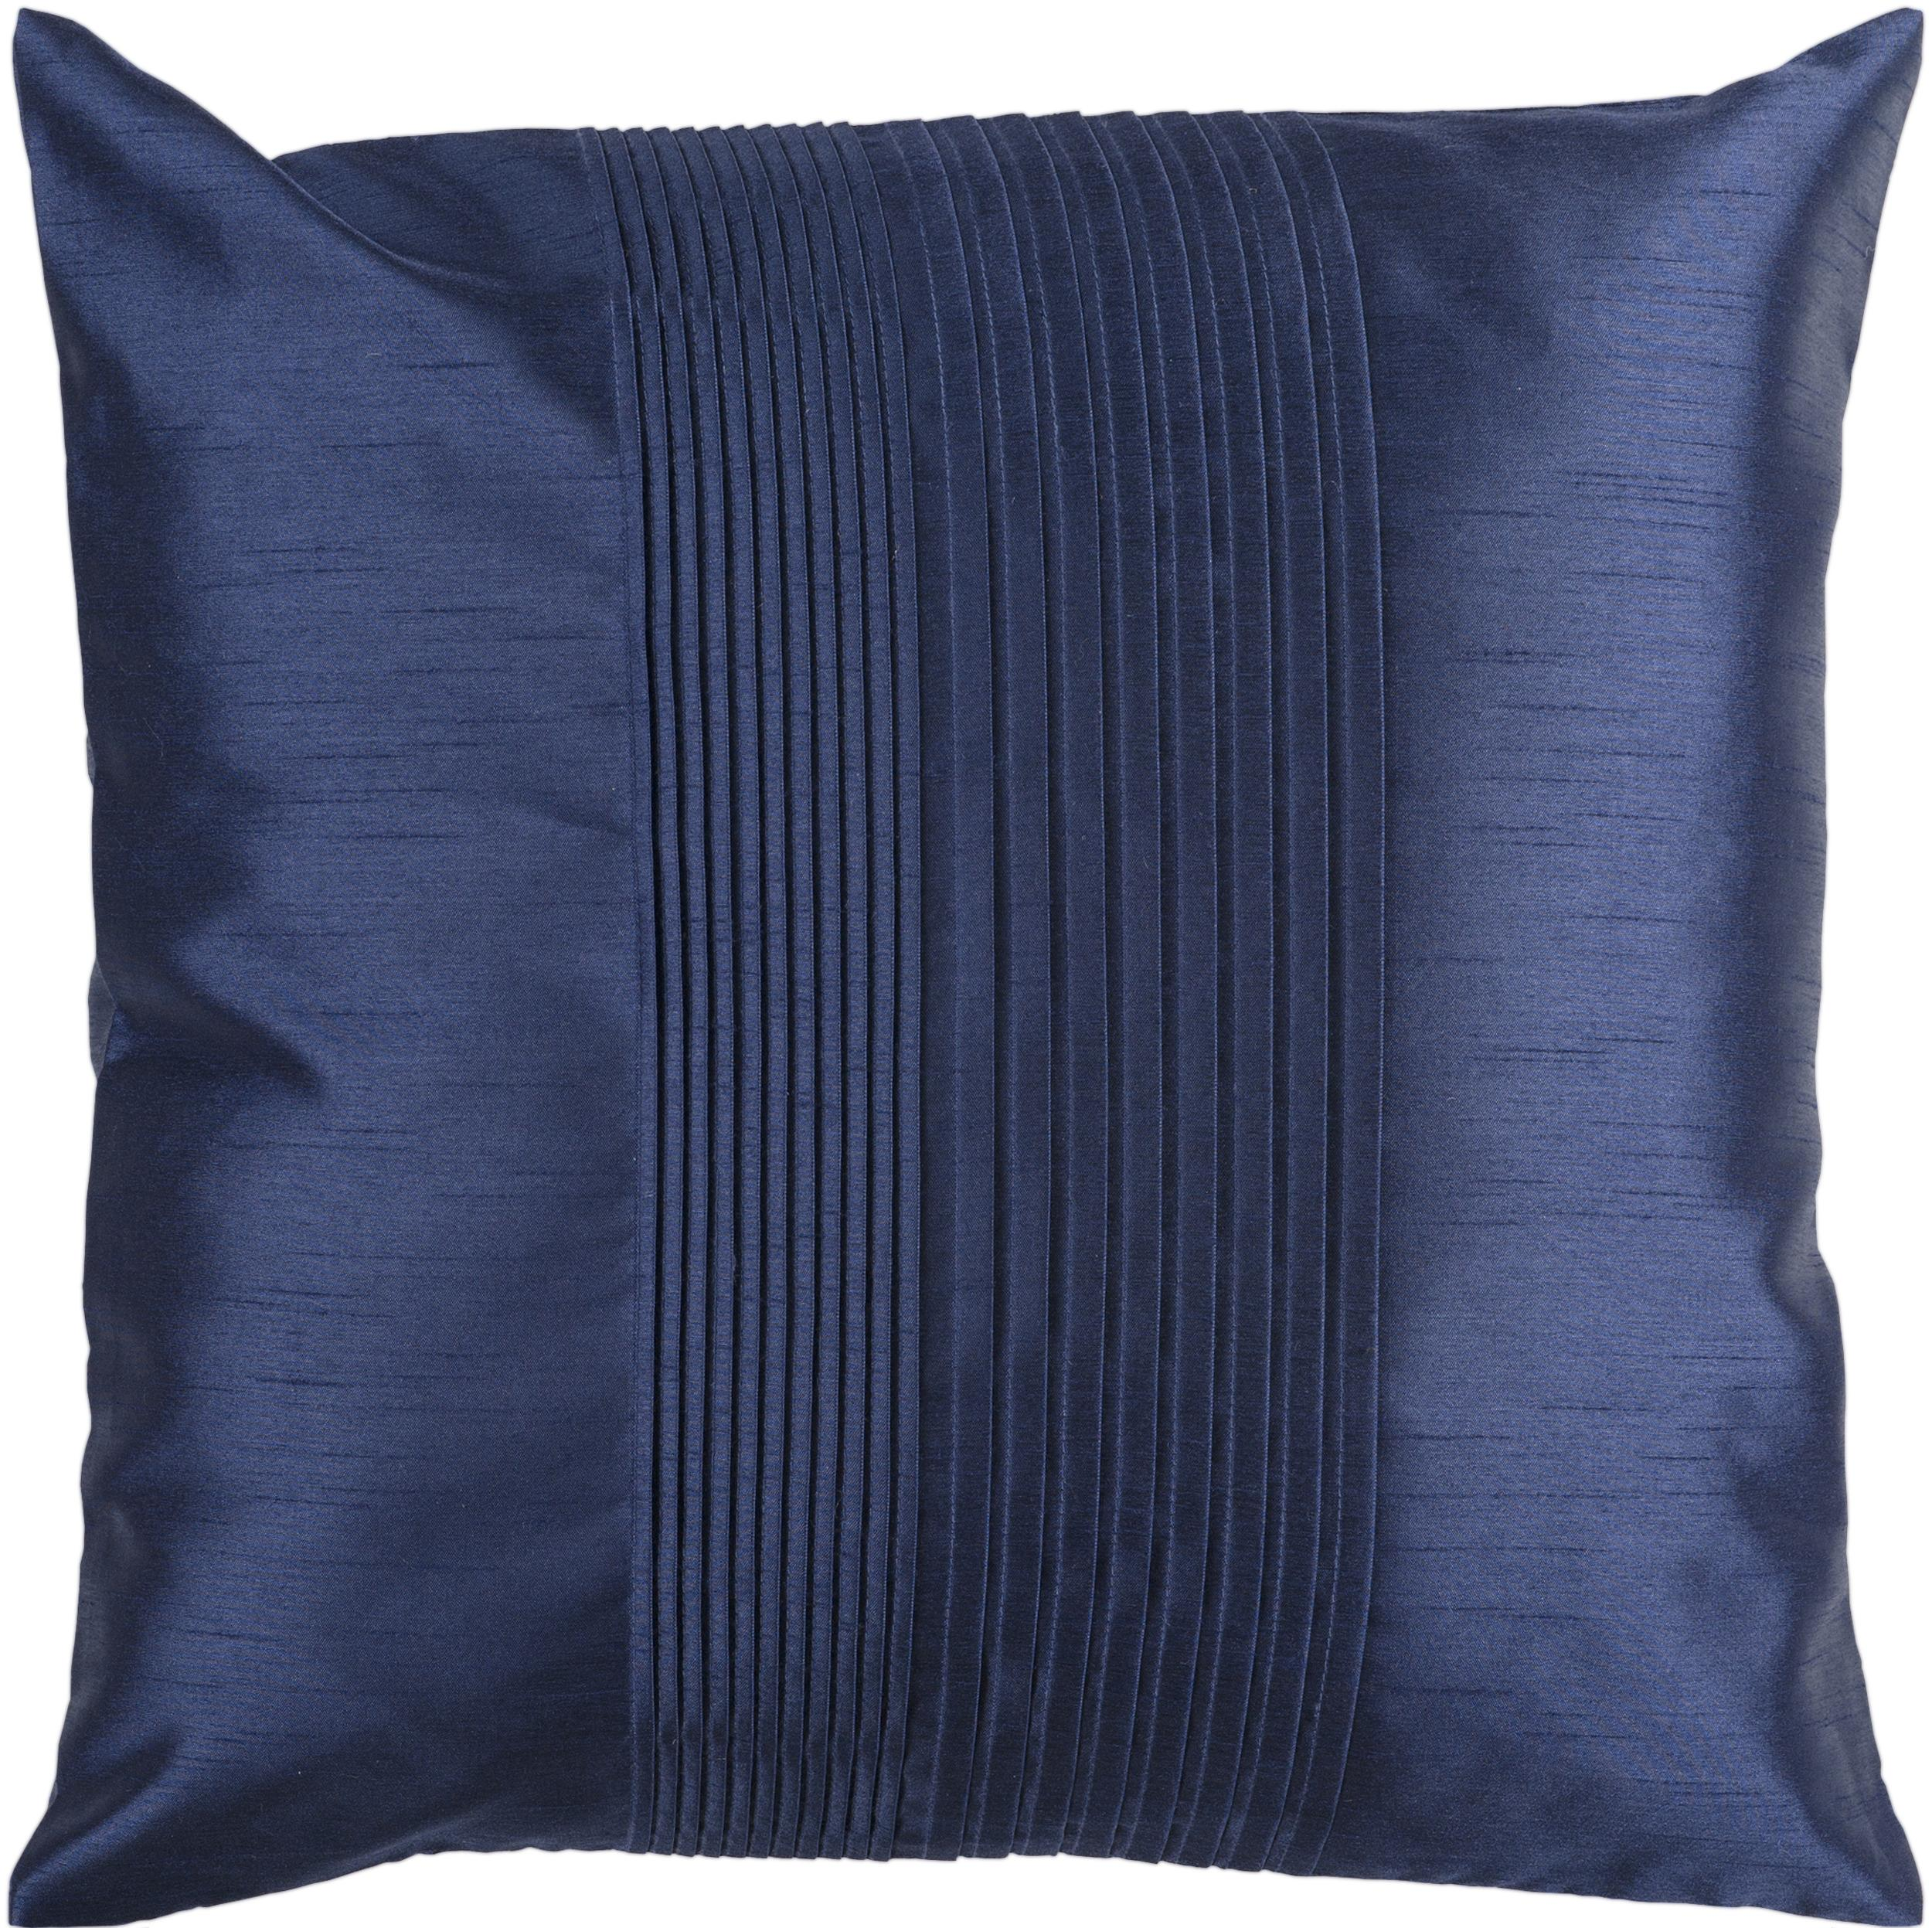 "Surya Pillows 22"" x 22"" Pillow - Item Number: HH029-2222P"